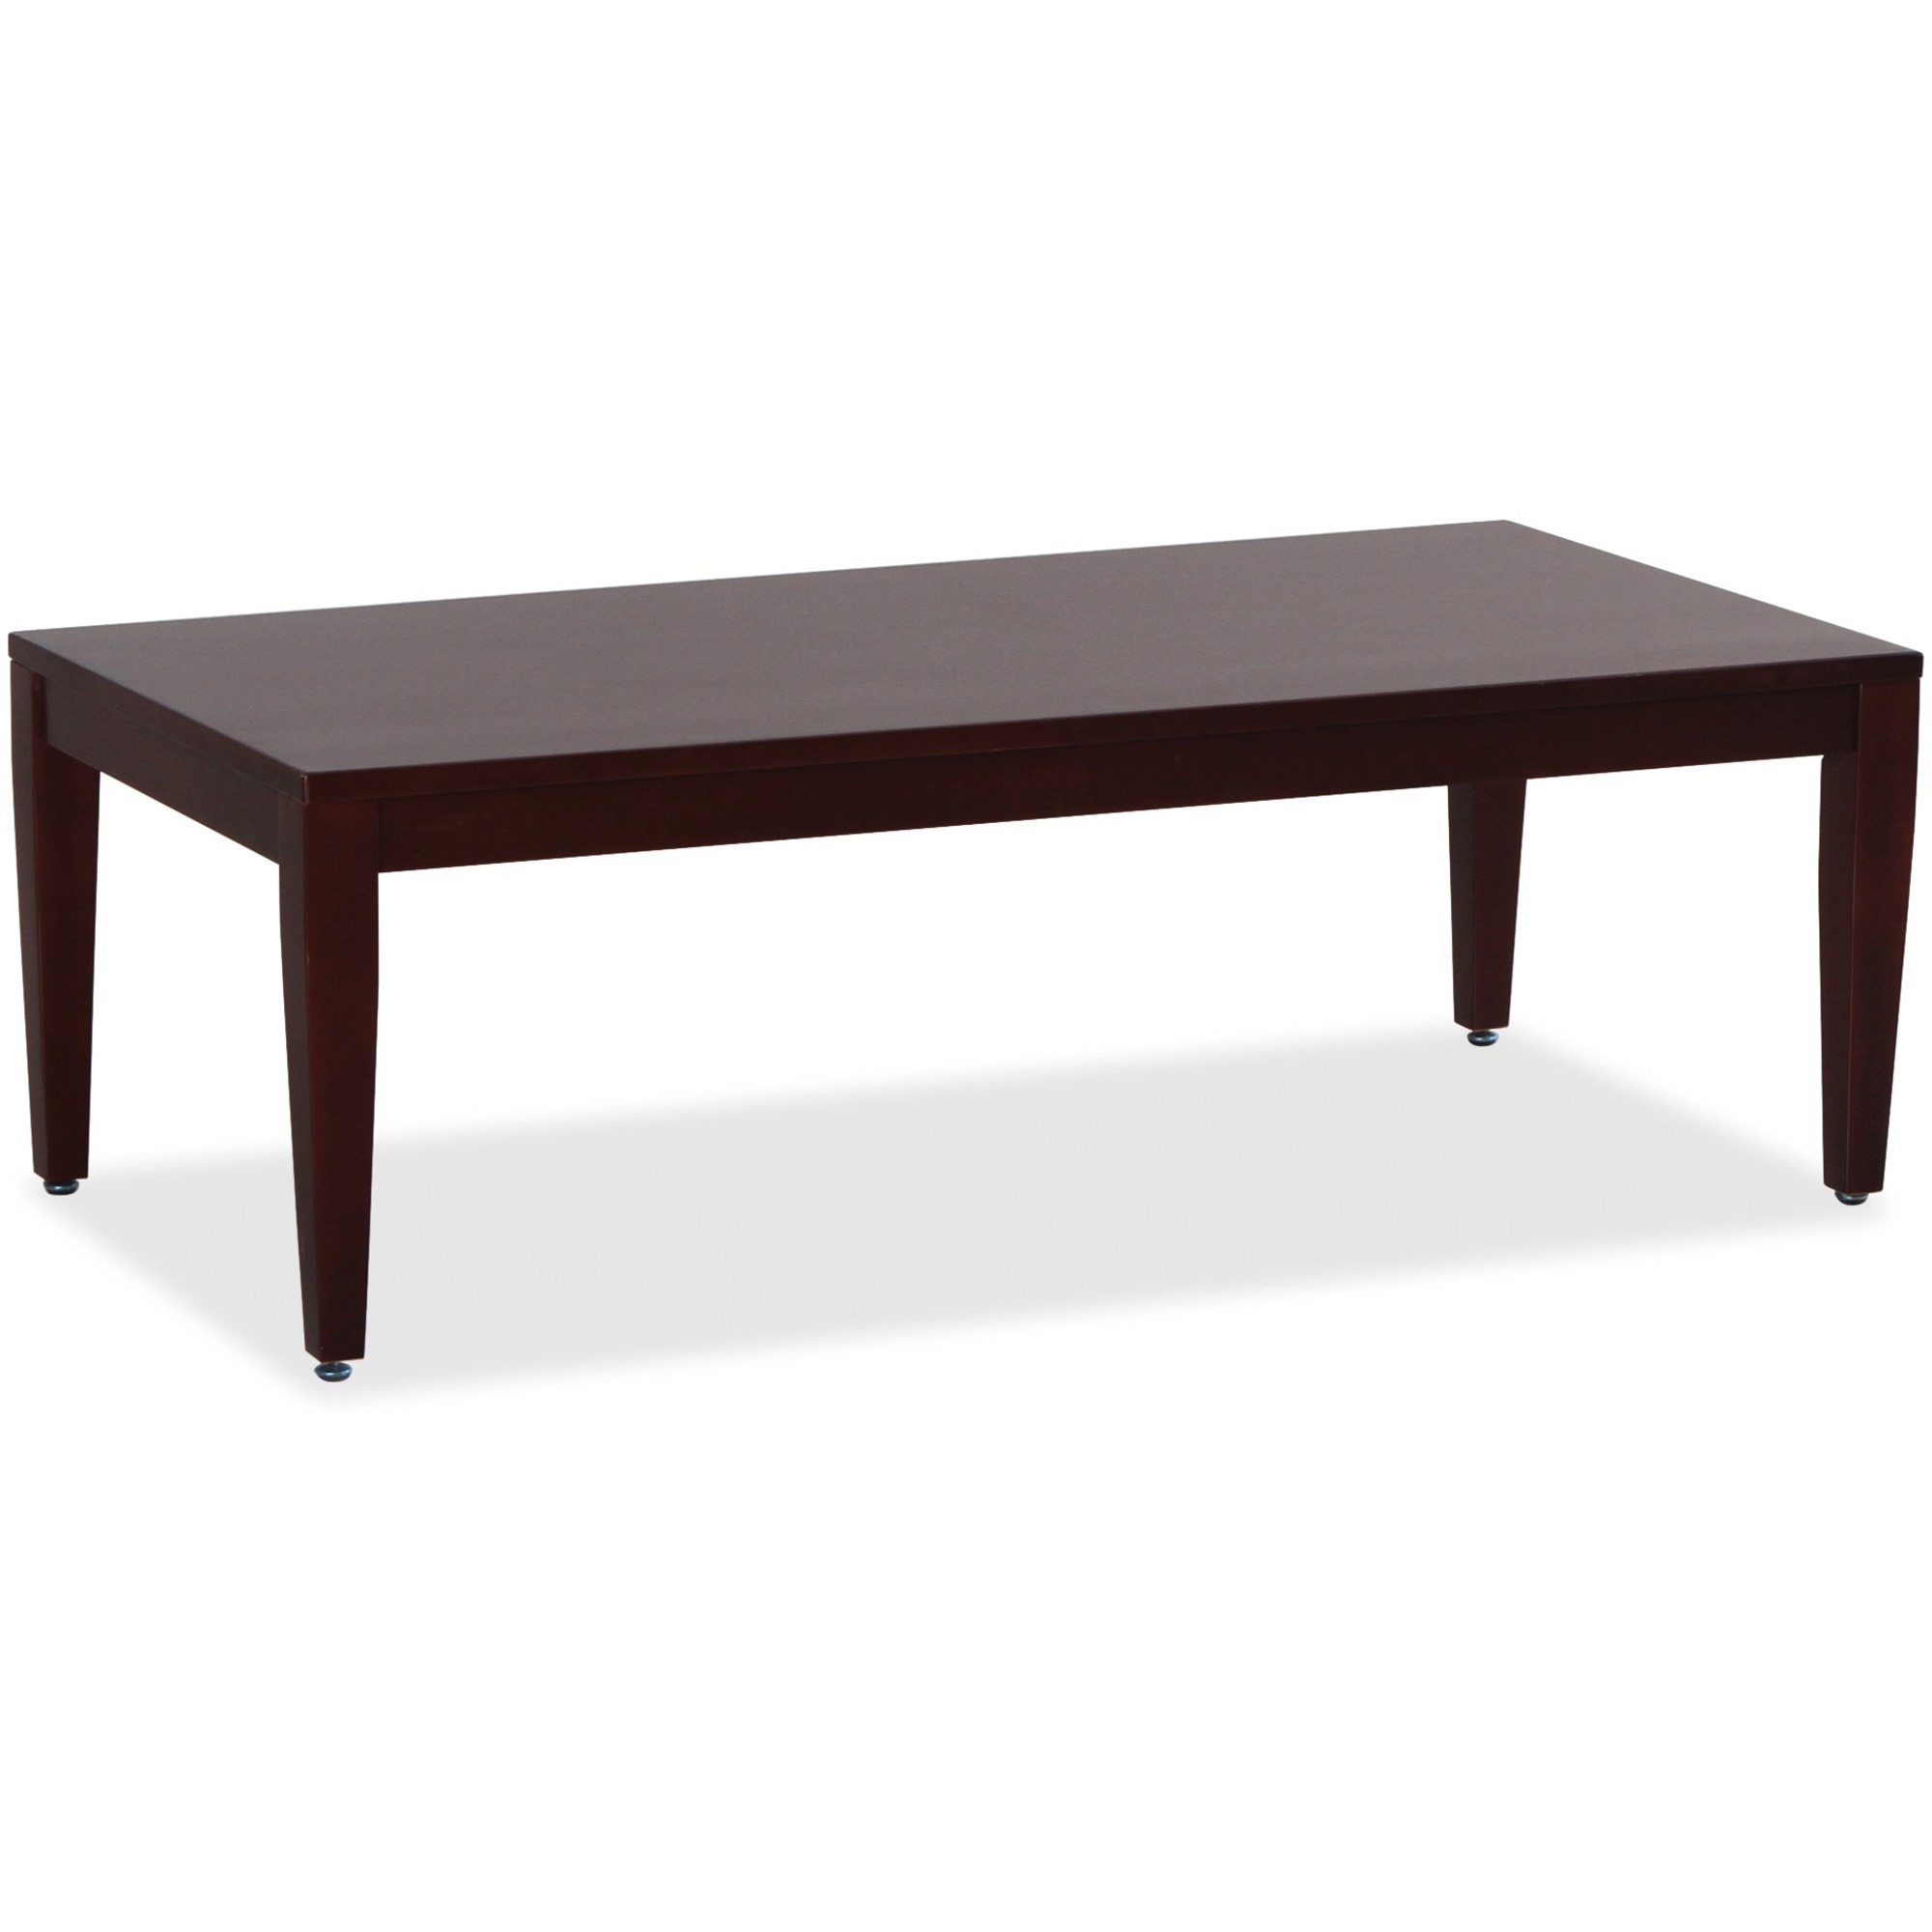 Selkirk Cellulars Office Supplies Corp Furniture Furniture - Coffee table depth